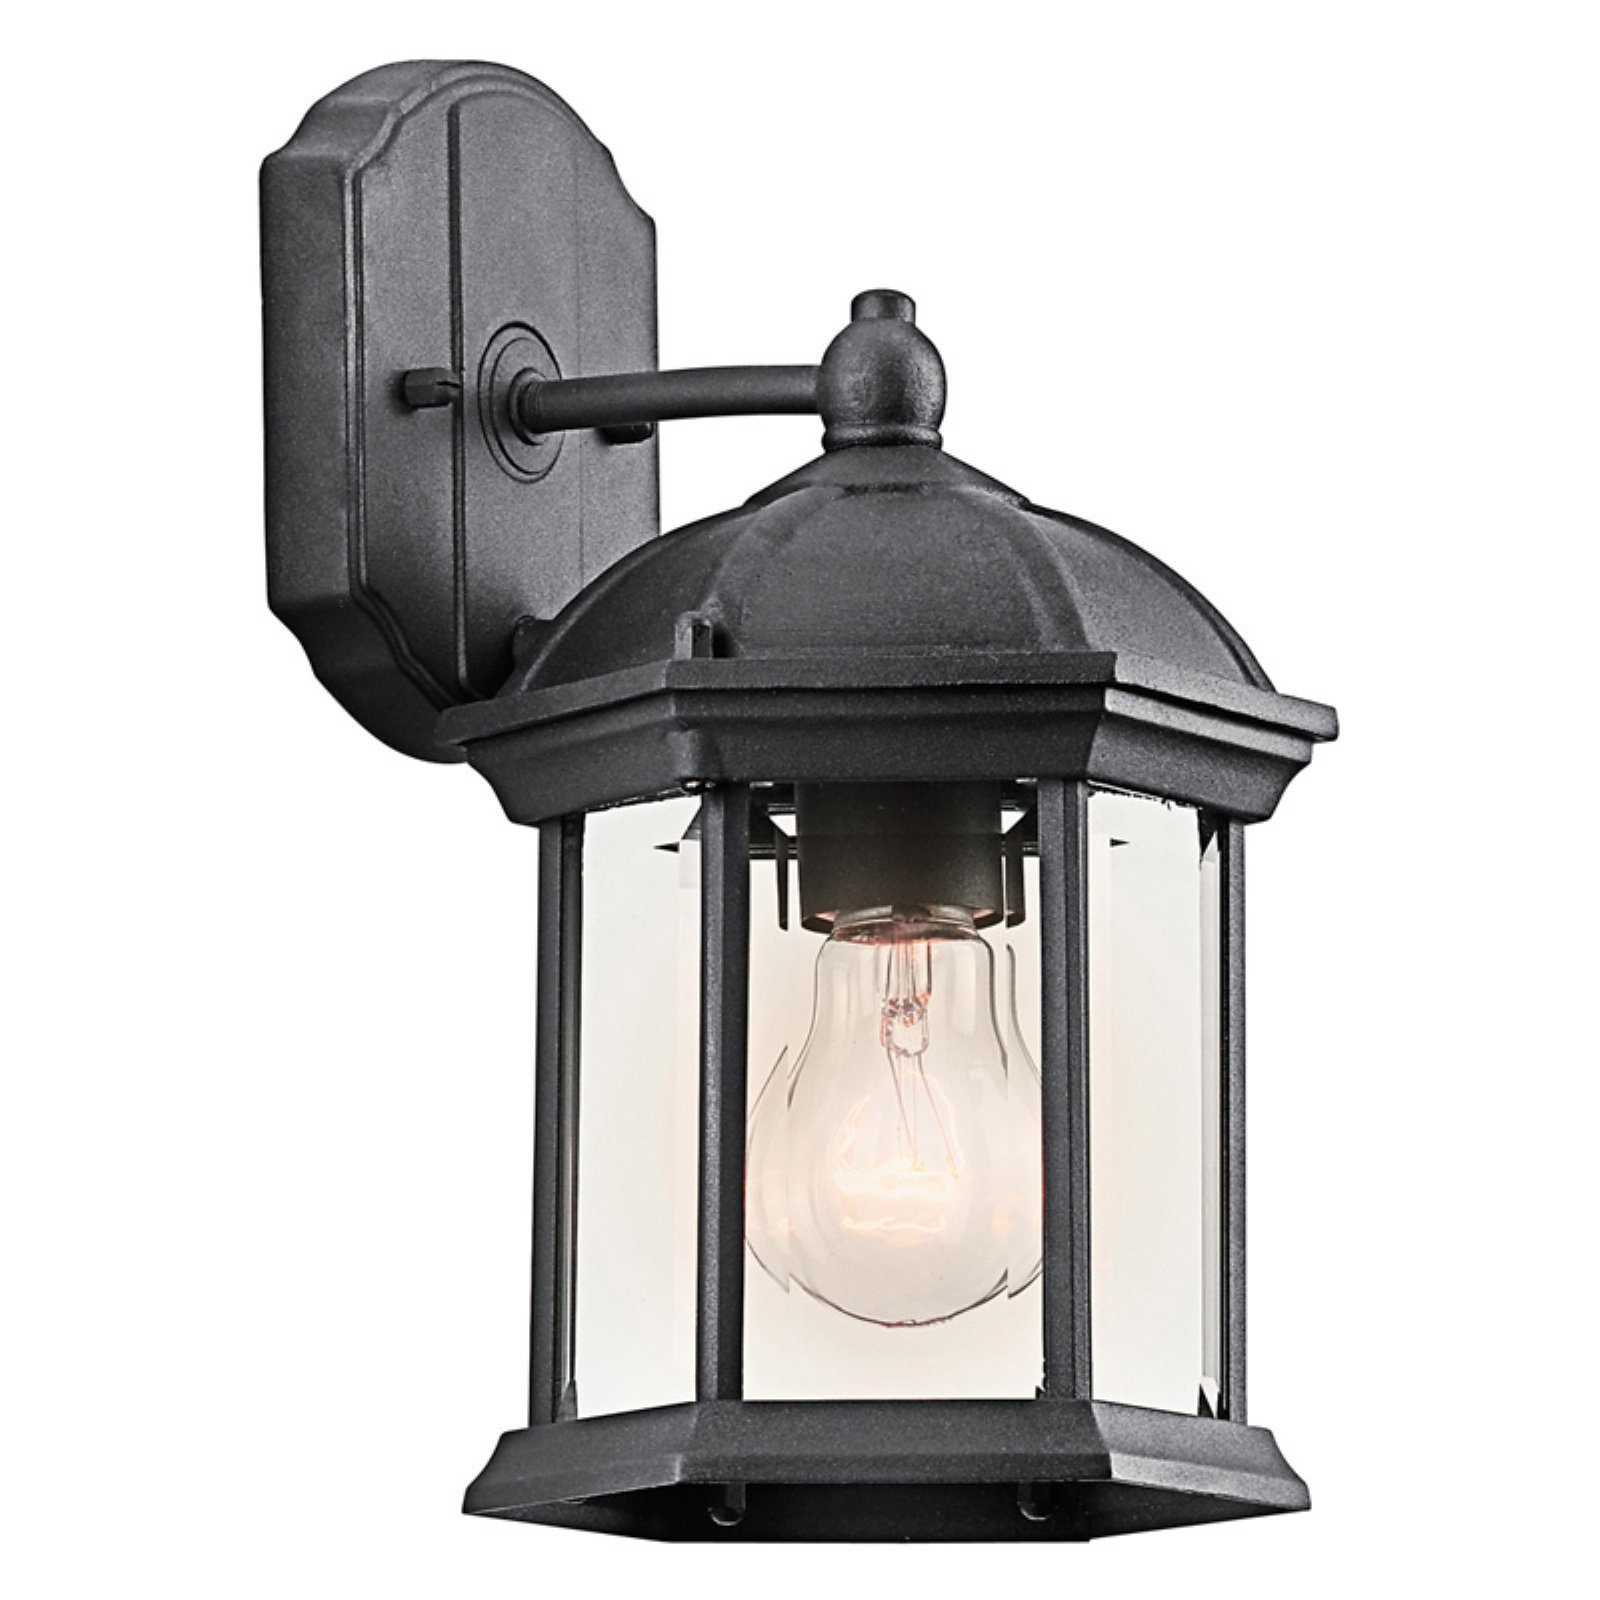 Kichler Barrie 49183L18 Outdoor Wall Light